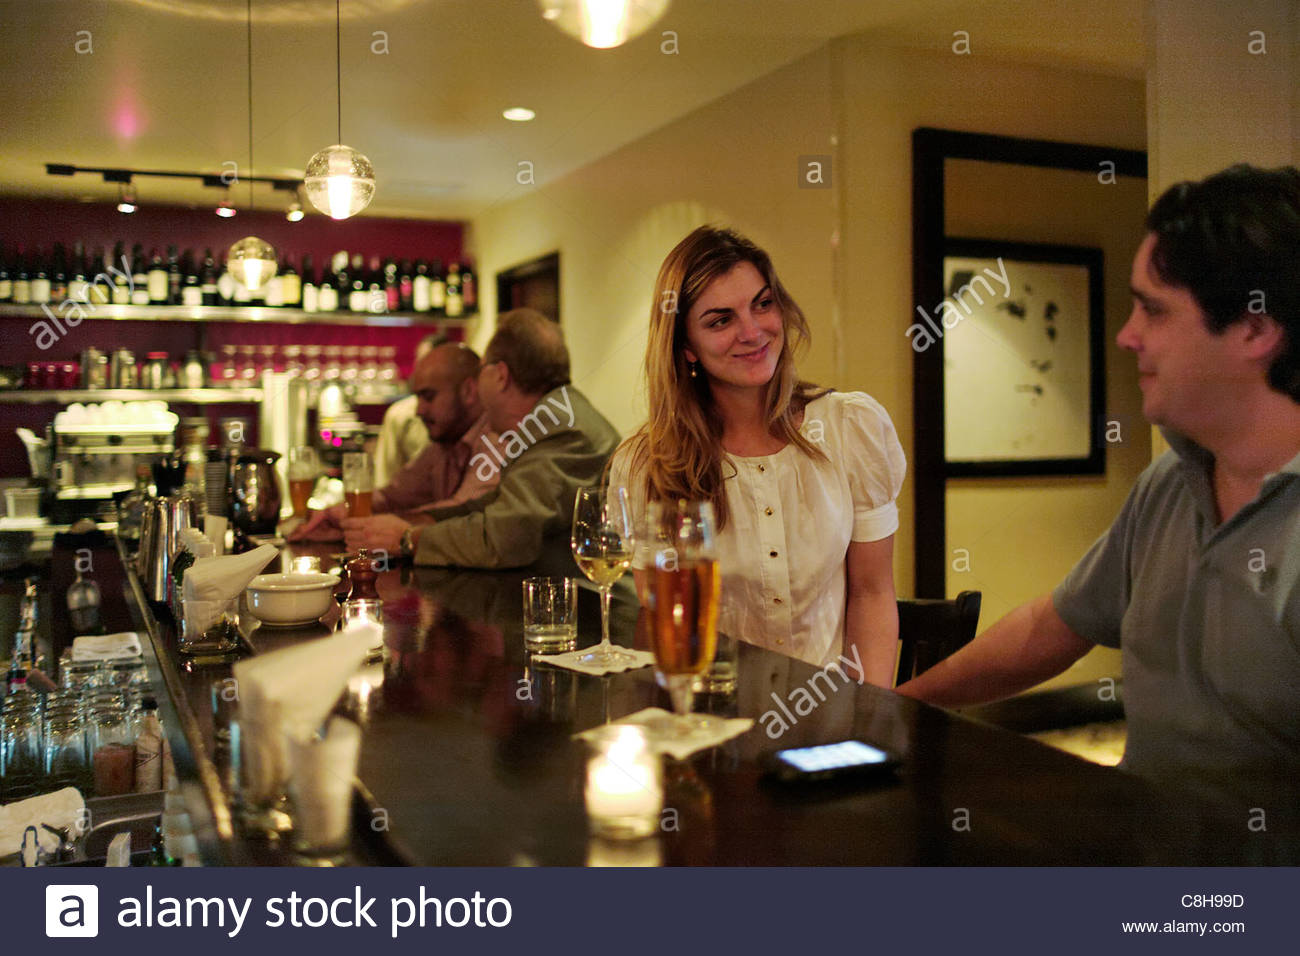 A couple at 'Michael's Genuine Food & Drink' restaurant. - Stock Image